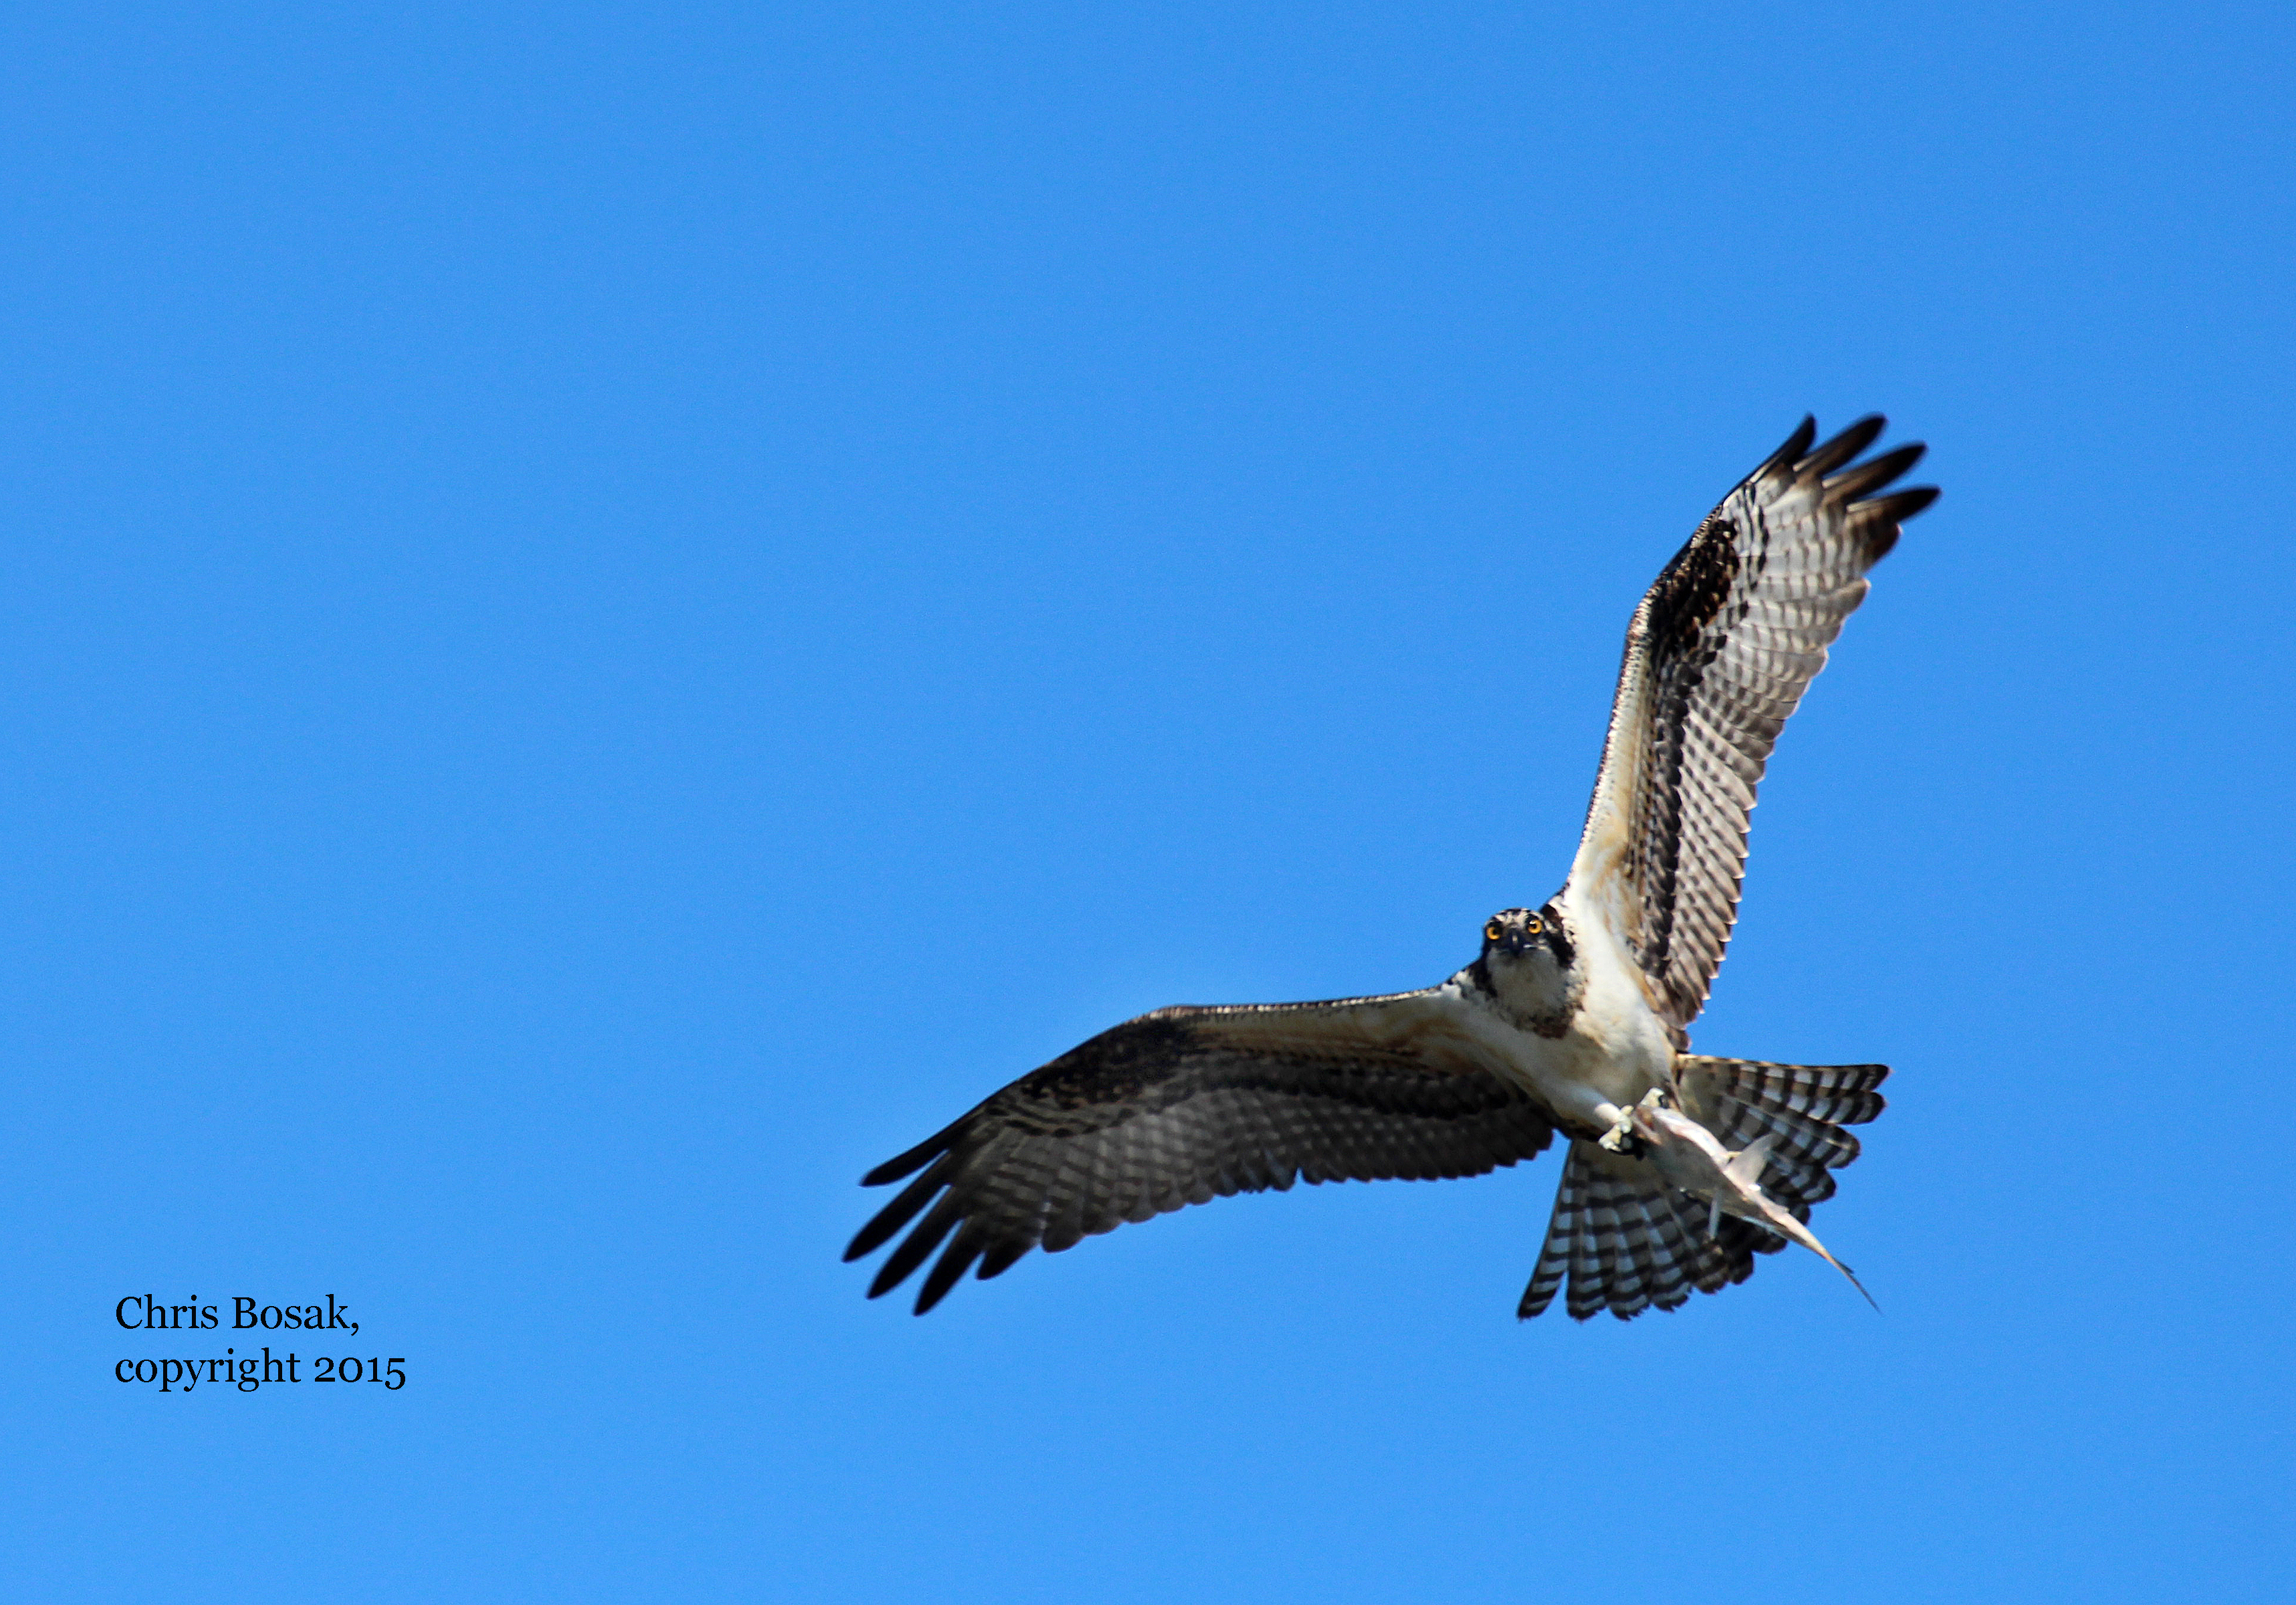 Photo by Chris Bosak An Osprey flies with a fish in its talons over the Norwalk River in Norwalk, Conn., summer 2015.